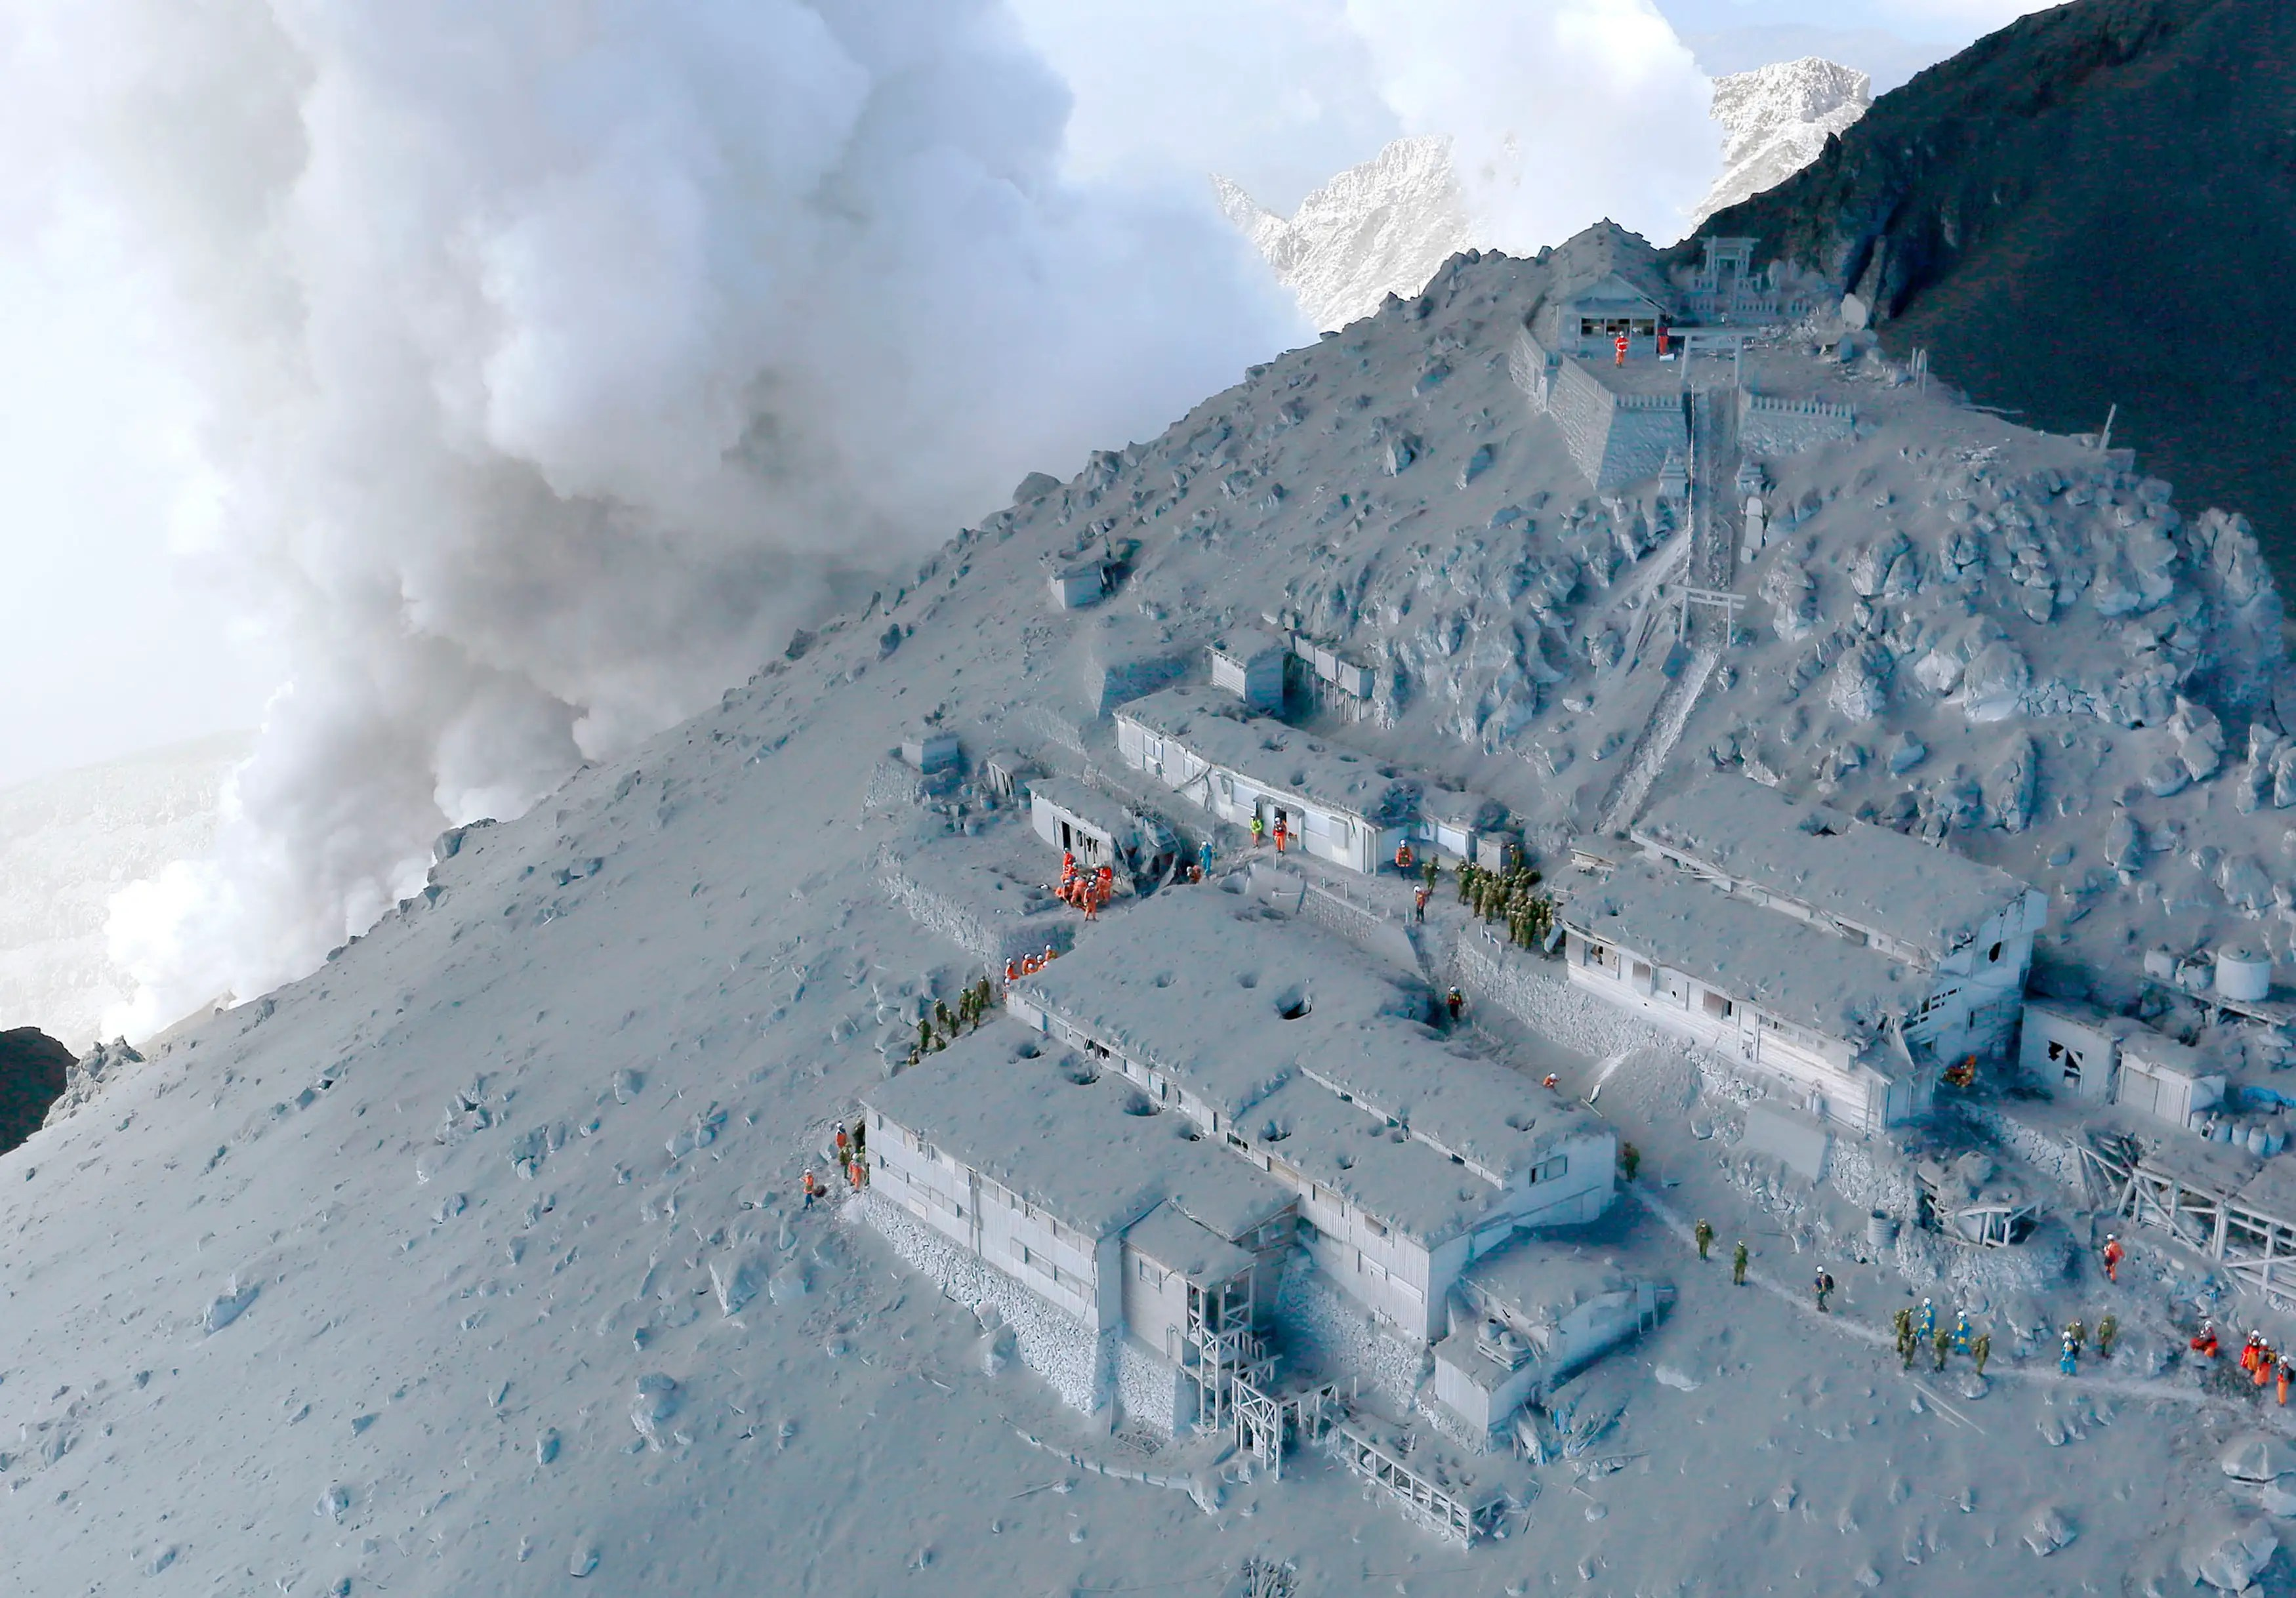 A Japanese volcano erupted without warning in September, covering mountain lodges in a coat of ash.